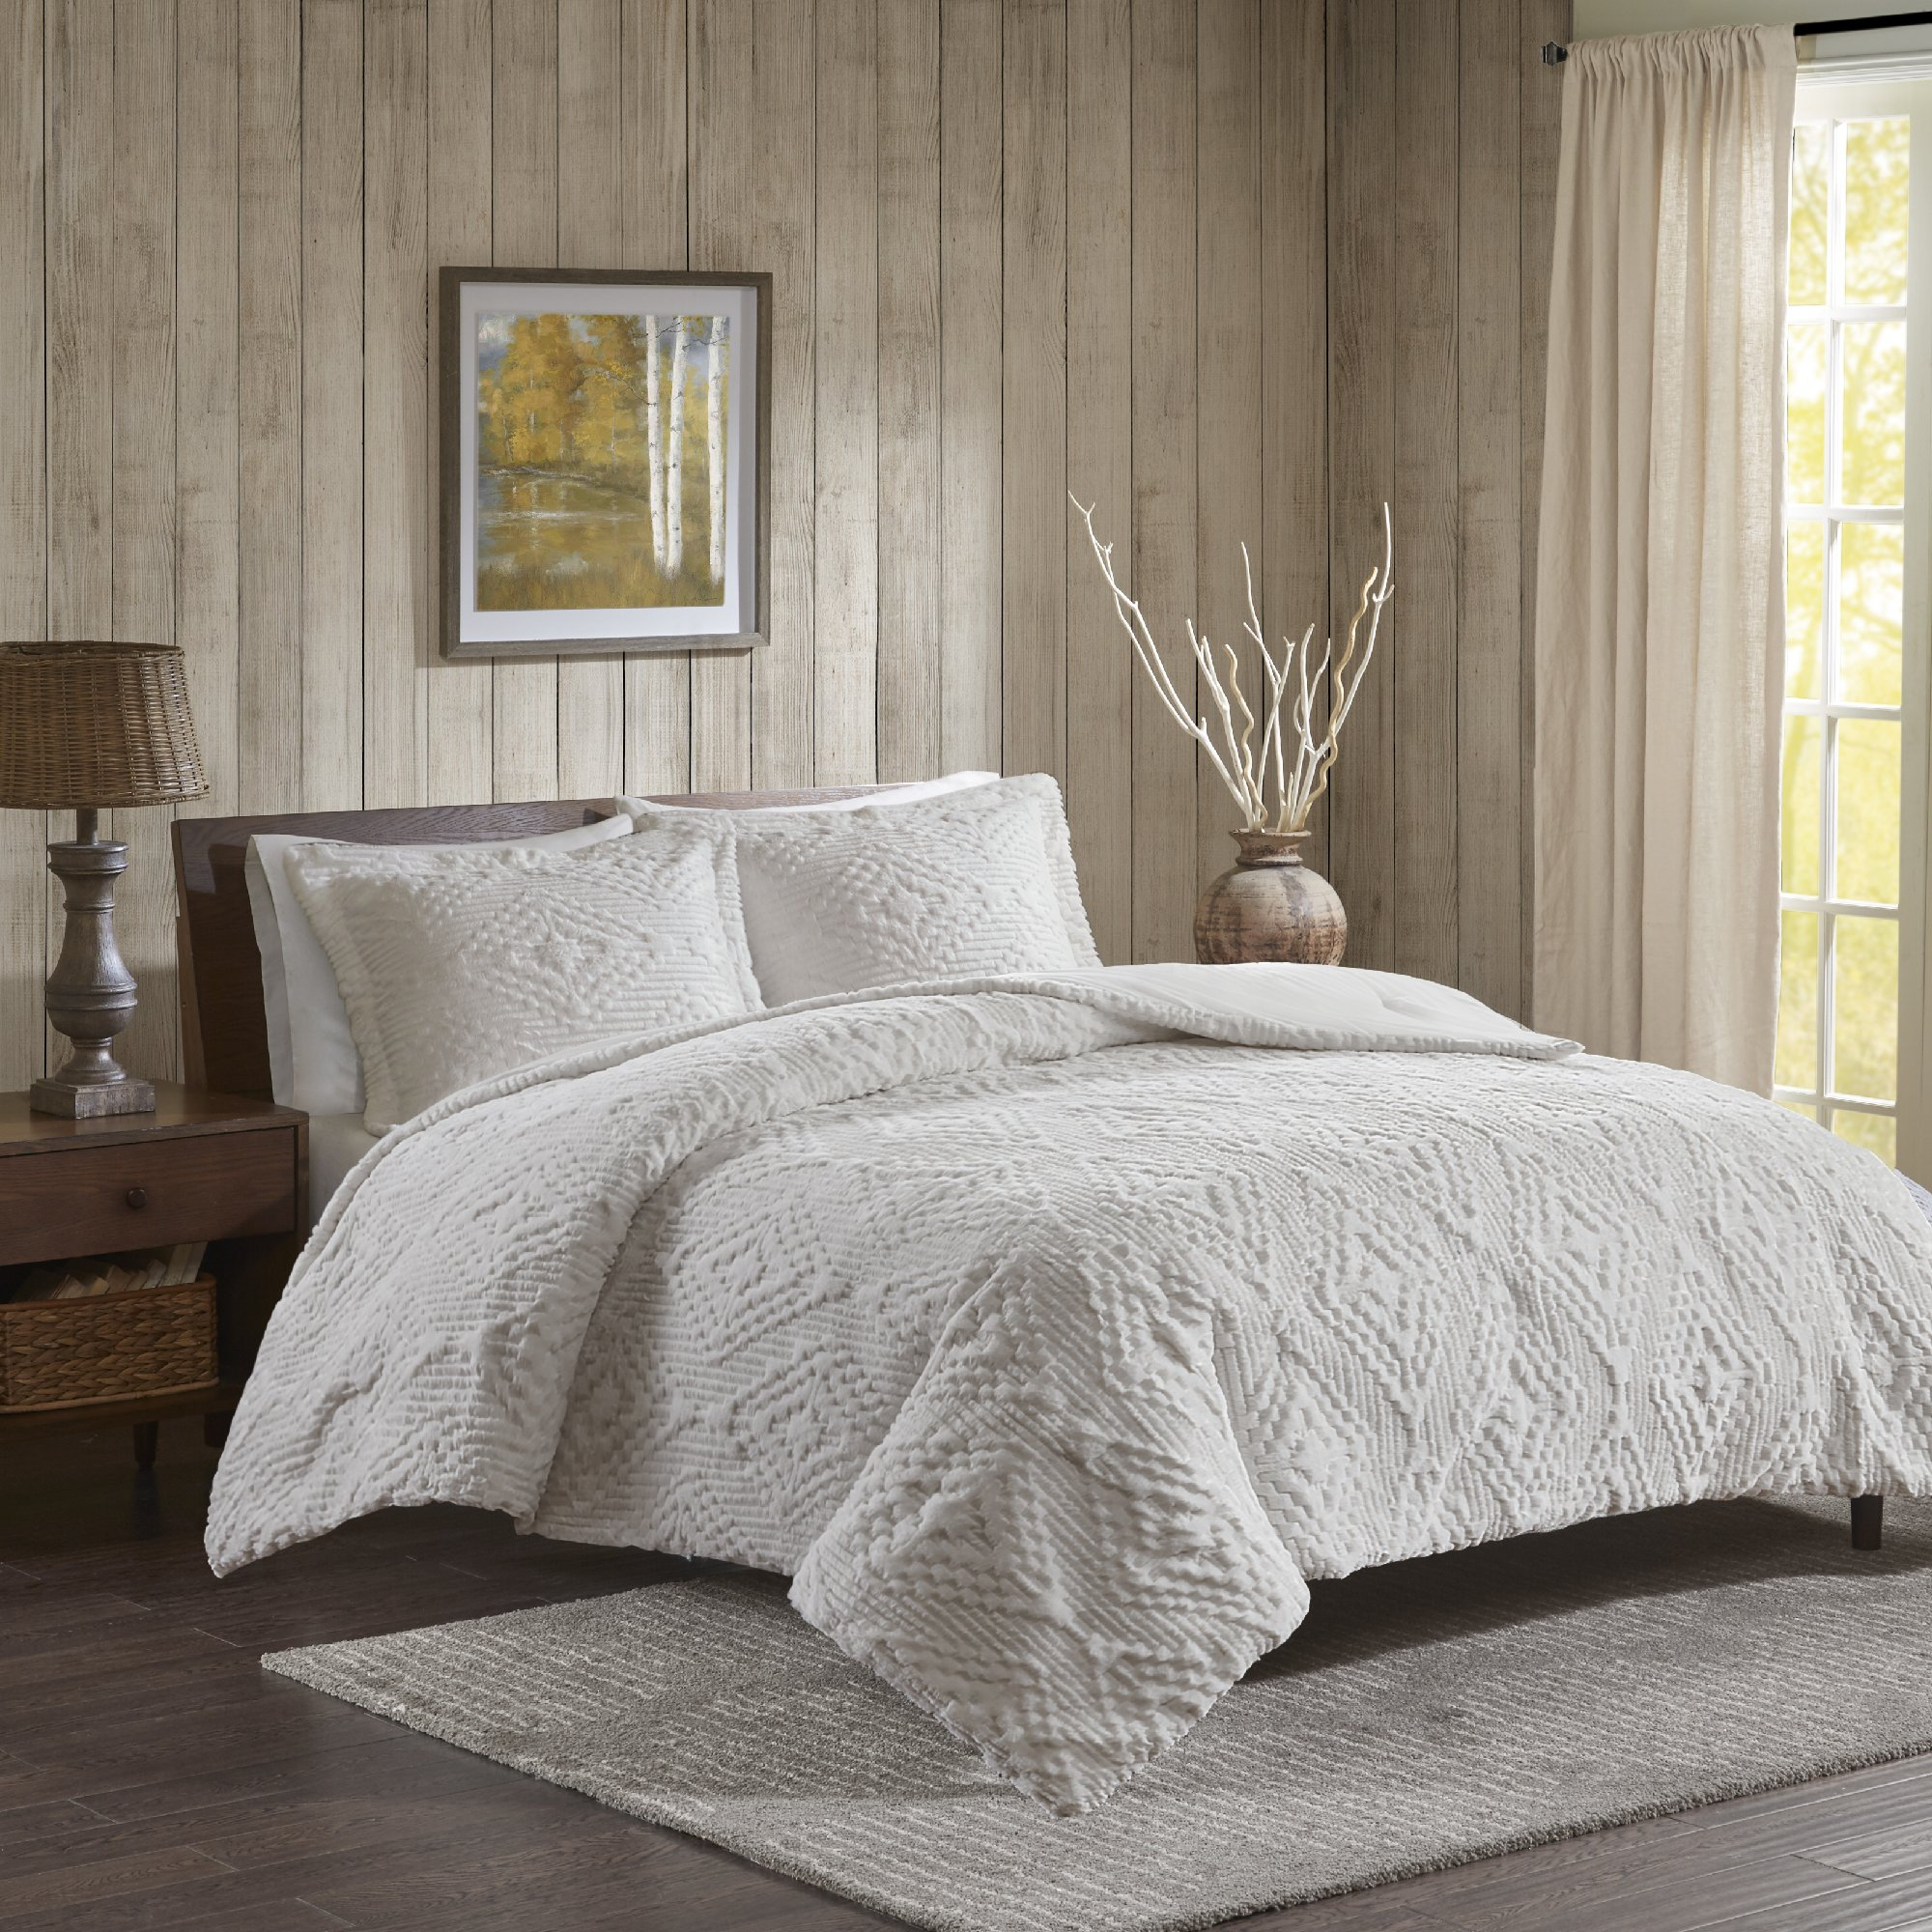 Woolrich Teton Full/Queen Size Quilt Bedding Set - Ivory, Embroidered – 3 Piece Bedding Quilt Coverlets – Ultra Soft Microfiber Bed Quilts Quilted Coverlet